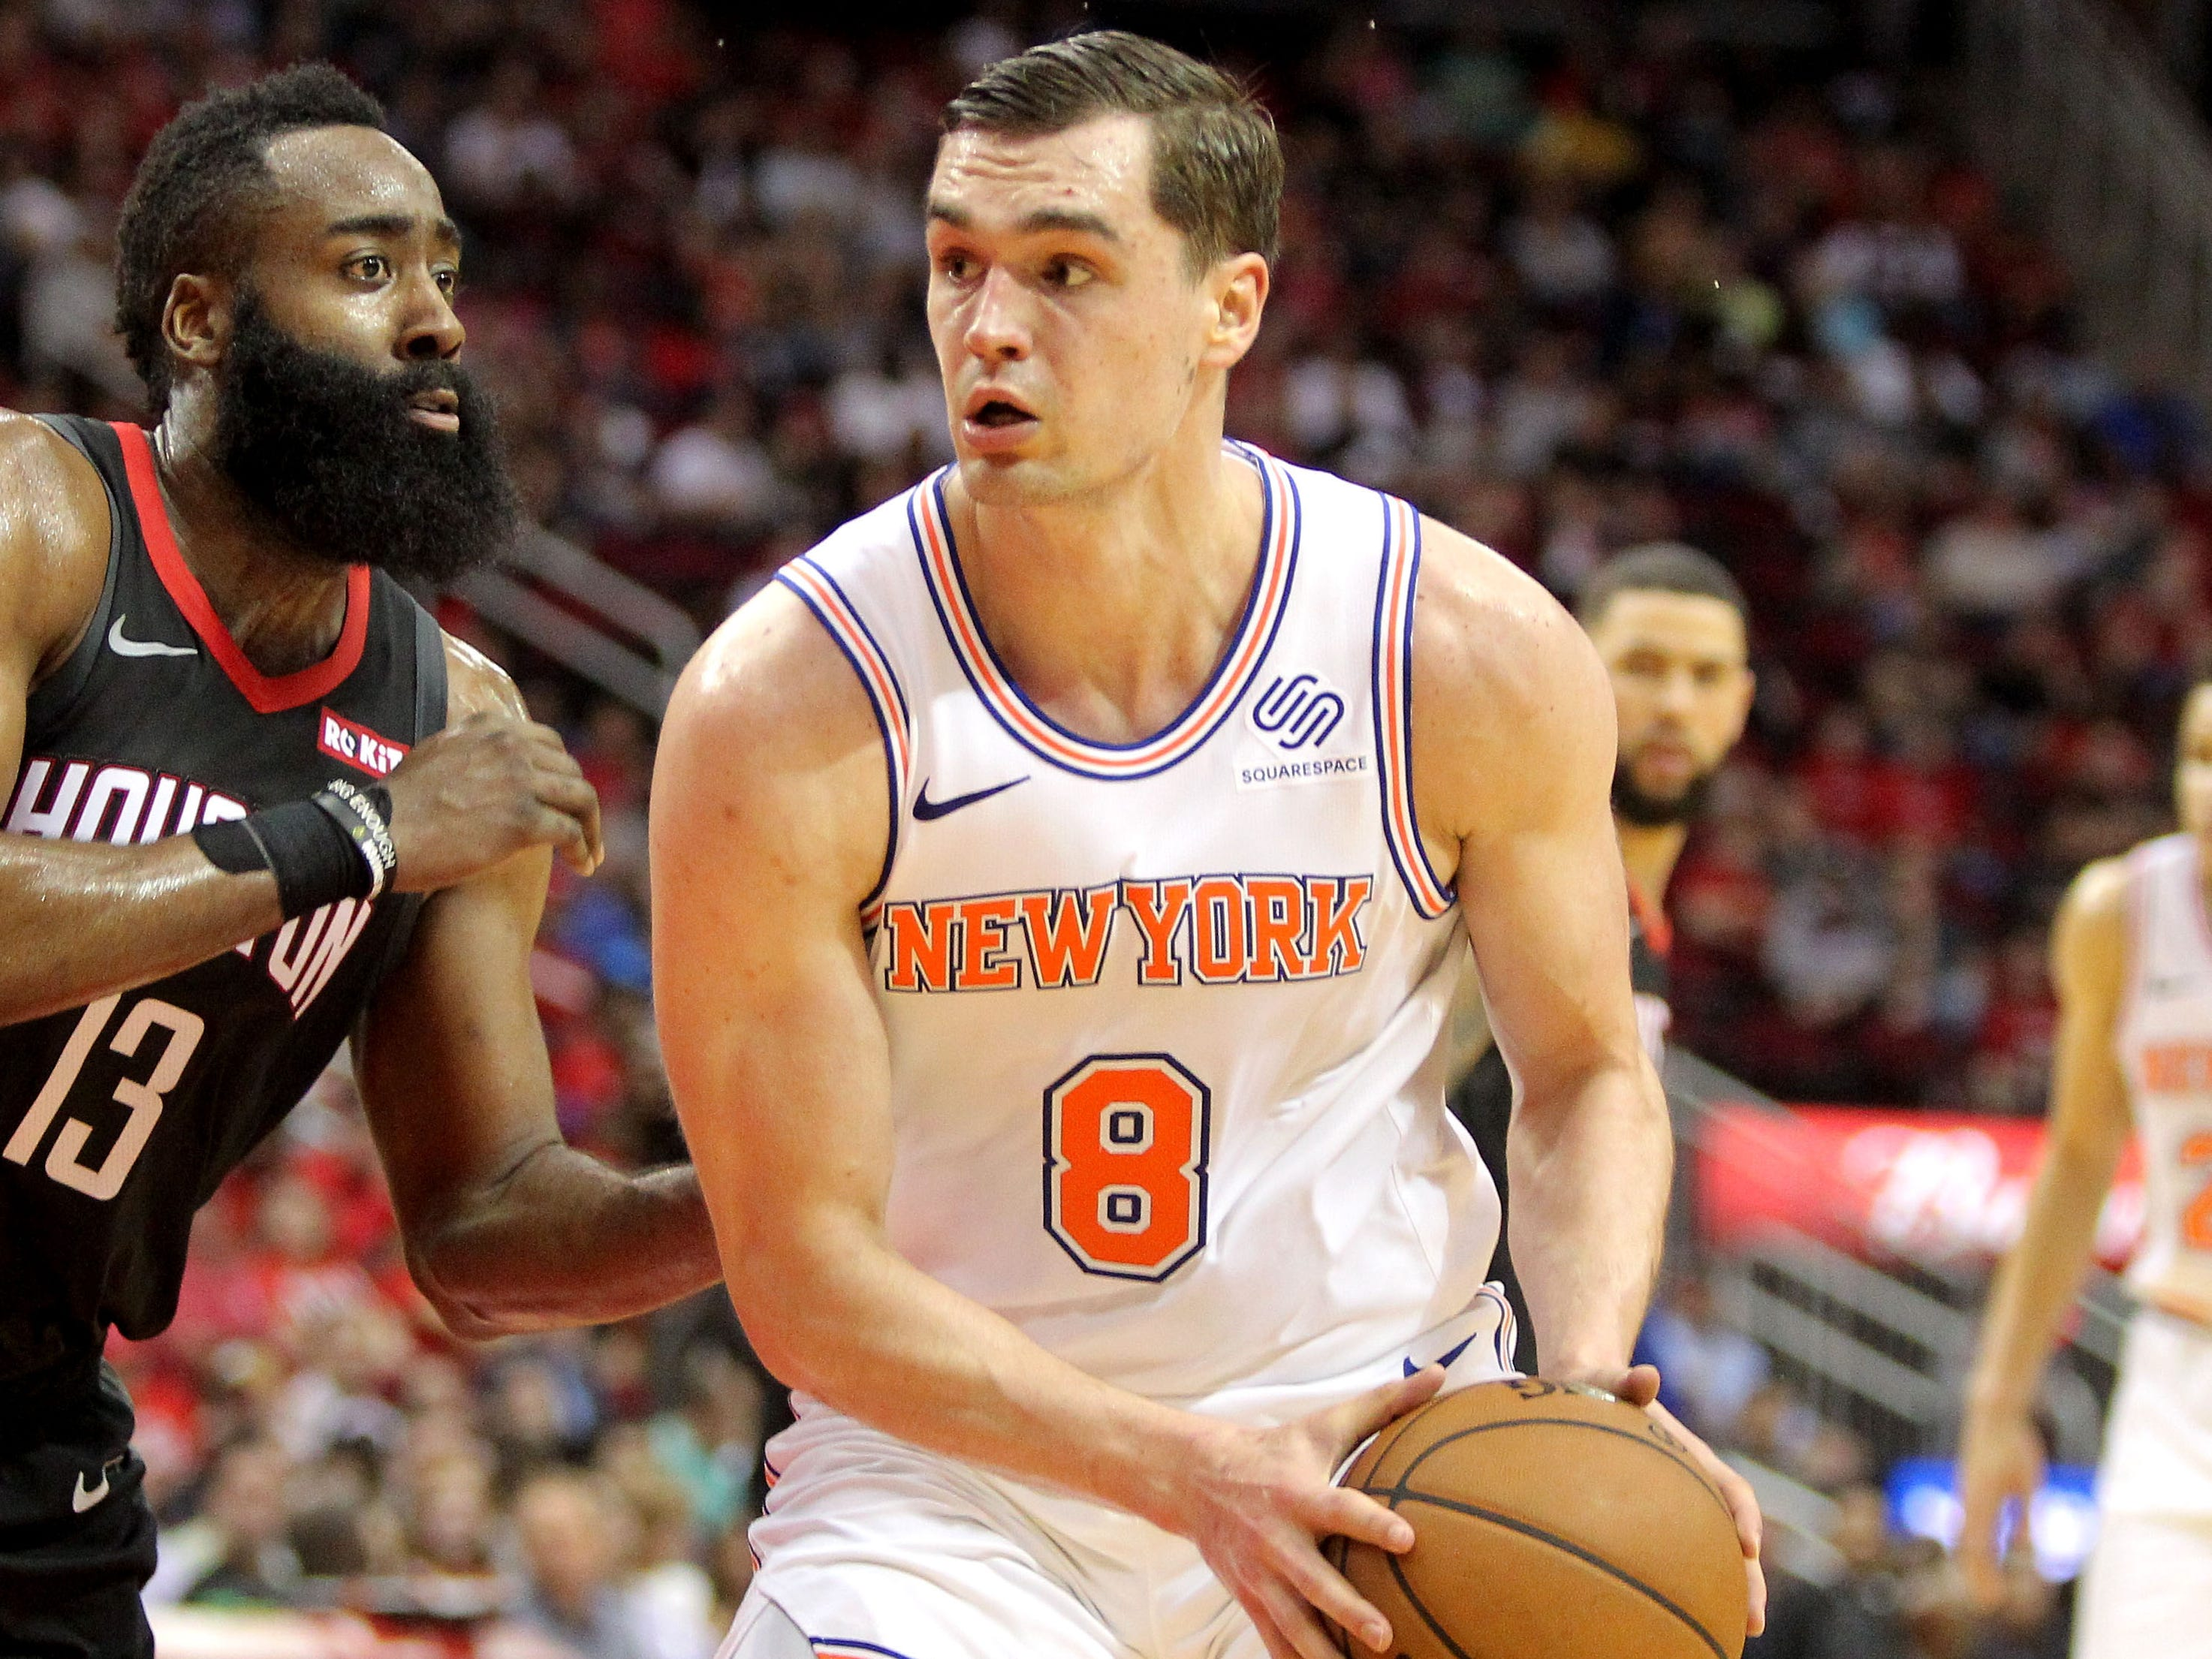 119. Mario Hezonja, Knicks (April 5): 16 points, 16 rebounds, 11 assists in 120-96 loss to Rockets.